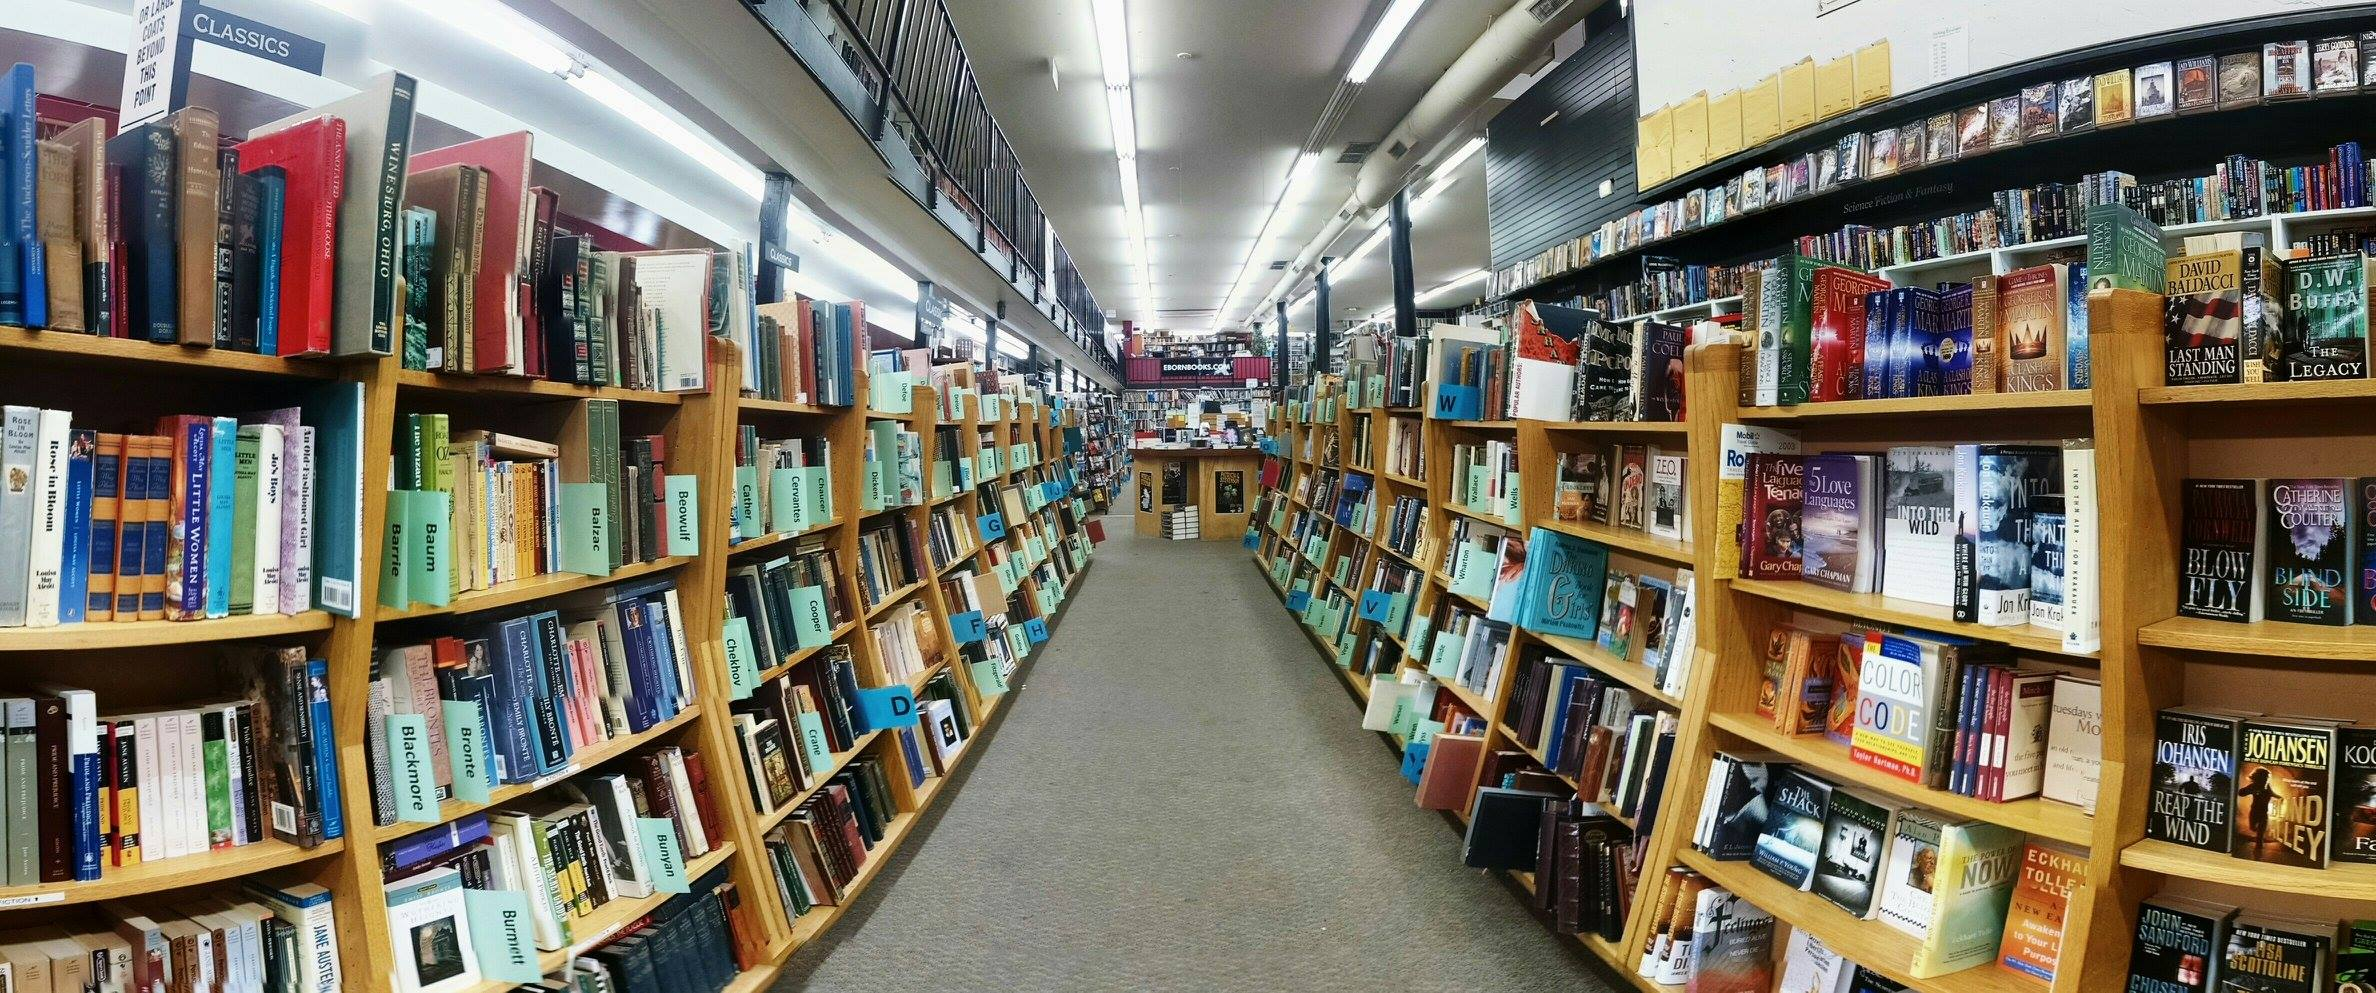 Inside Eborn Books downtown Salt Lake City Utah